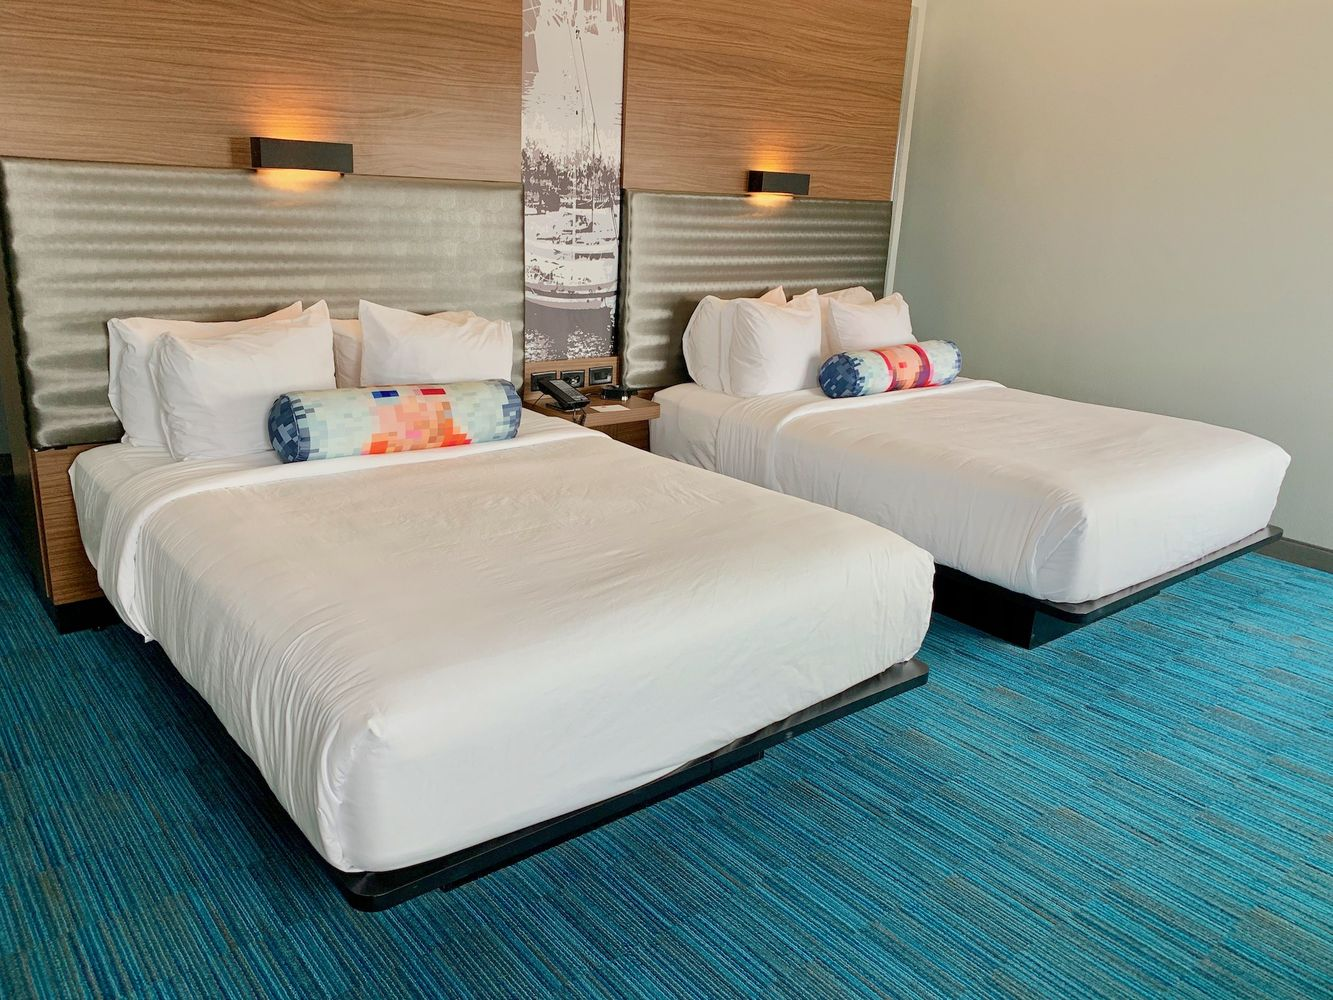 Two Queen beds at the Corpus Christi Aloft Hotel